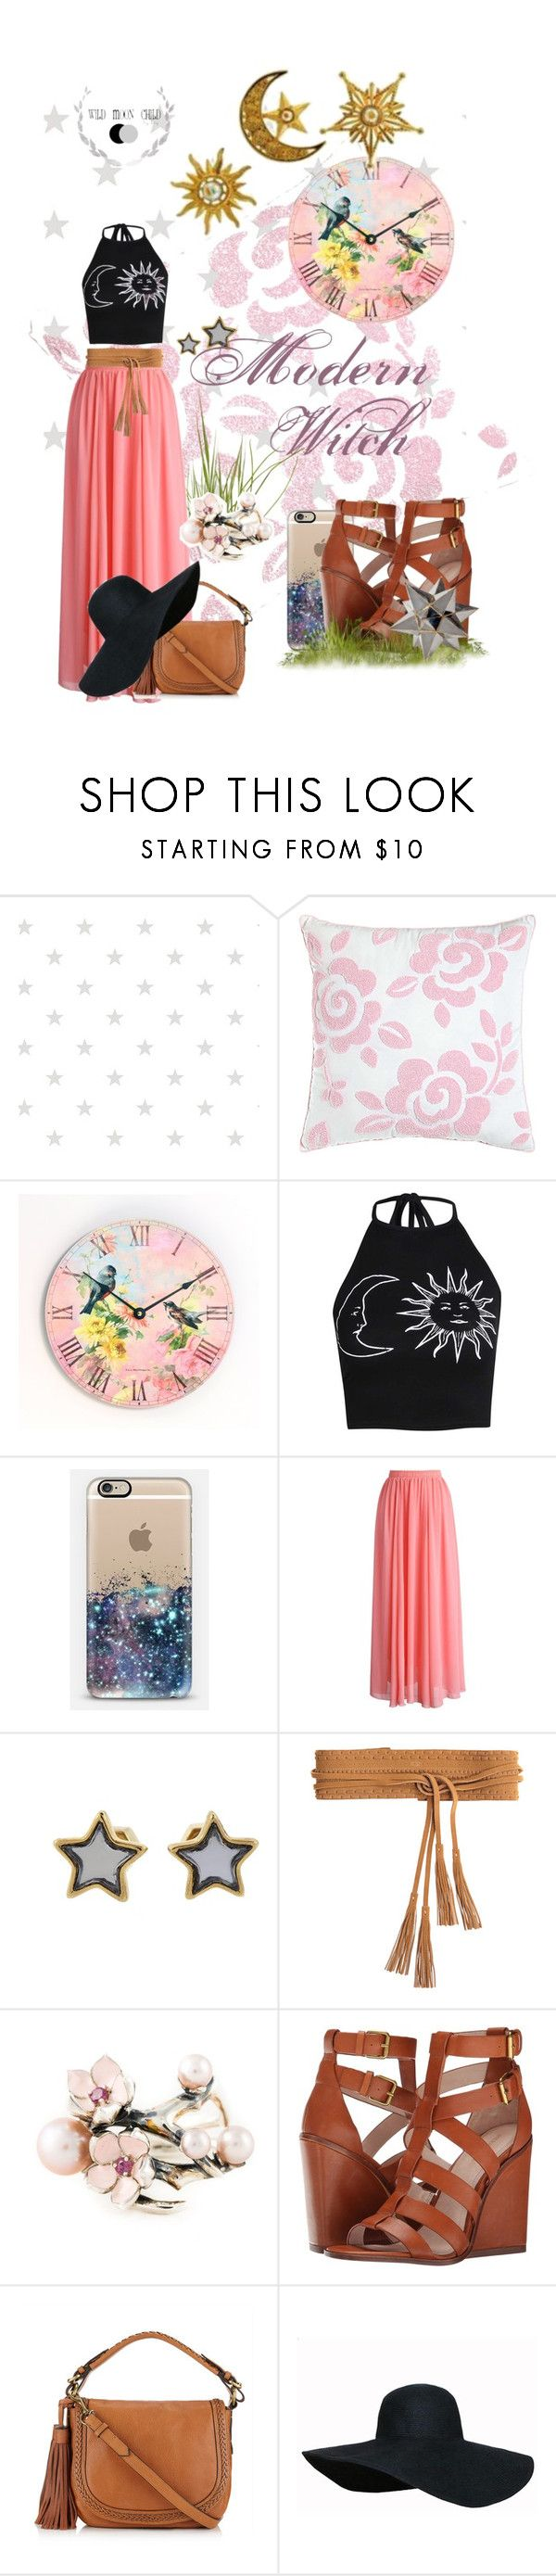 """Modern Witch"" by wildmoonchild ❤ liked on Polyvore featuring Dena Home, WALL, Boohoo, Chicwish, Marc by Marc Jacobs, Linea Pelle, Shaun Leane, Pour La Victoire, Jigsaw and Regina Andrew Design"